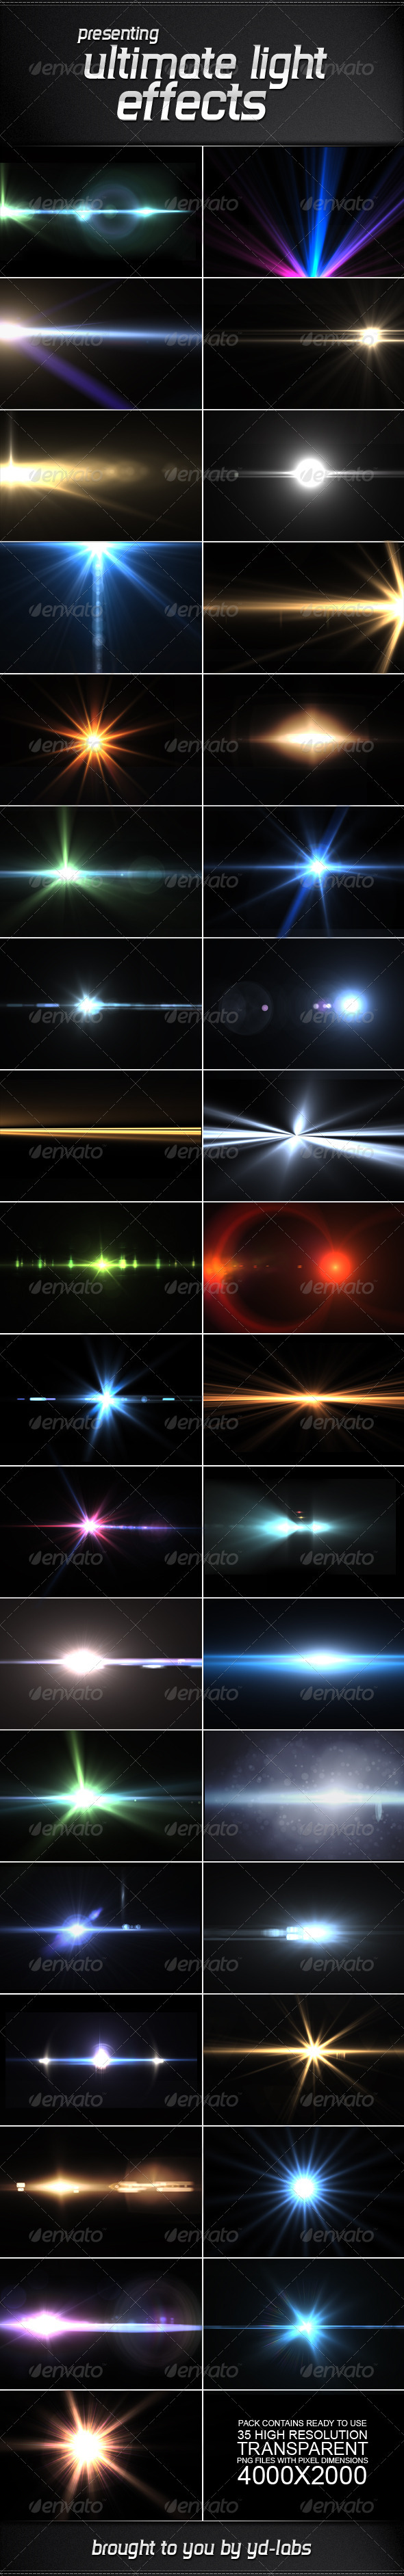 GraphicRiver 35 Ultimate Light Effects Volume 2 2600793